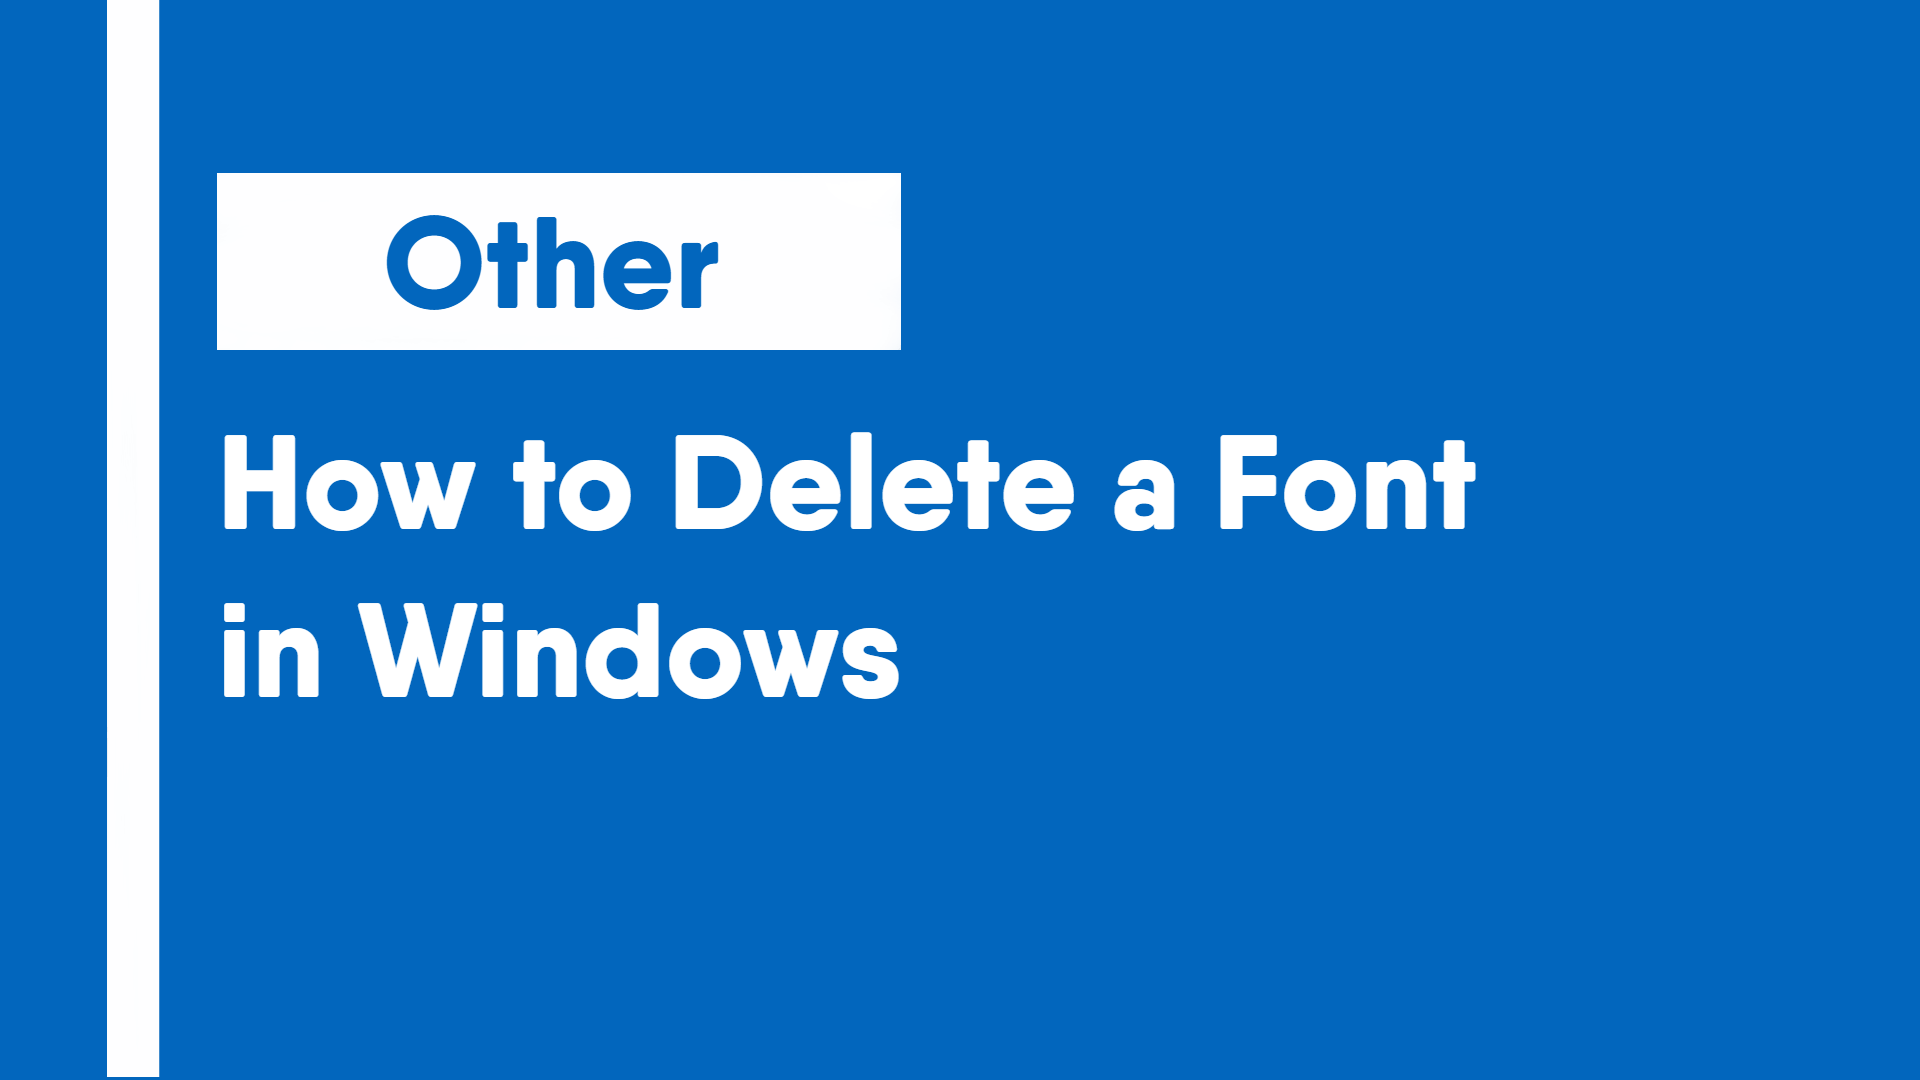 How to Delete a Font in Windows